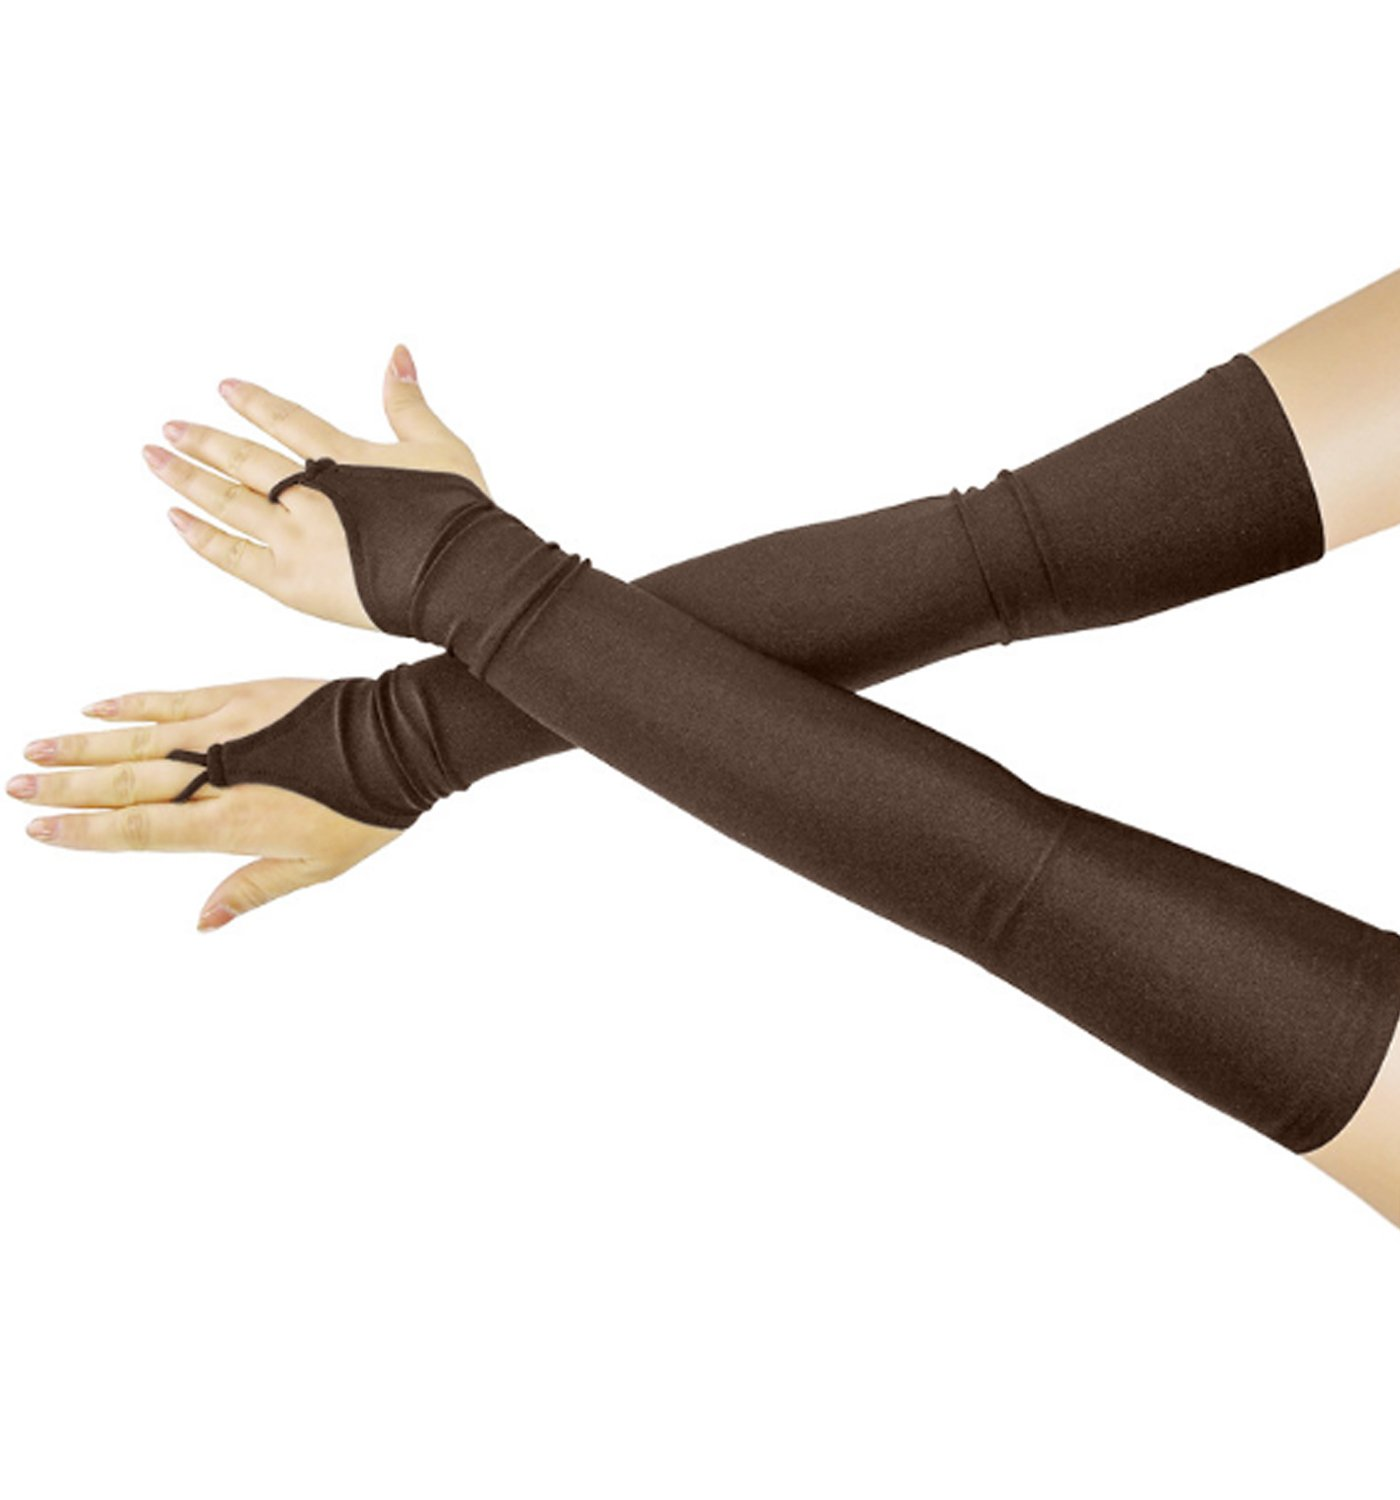 JOKHOO Fingerless Long Over the Elbow Bridal Satin Gloves (Dark brown)